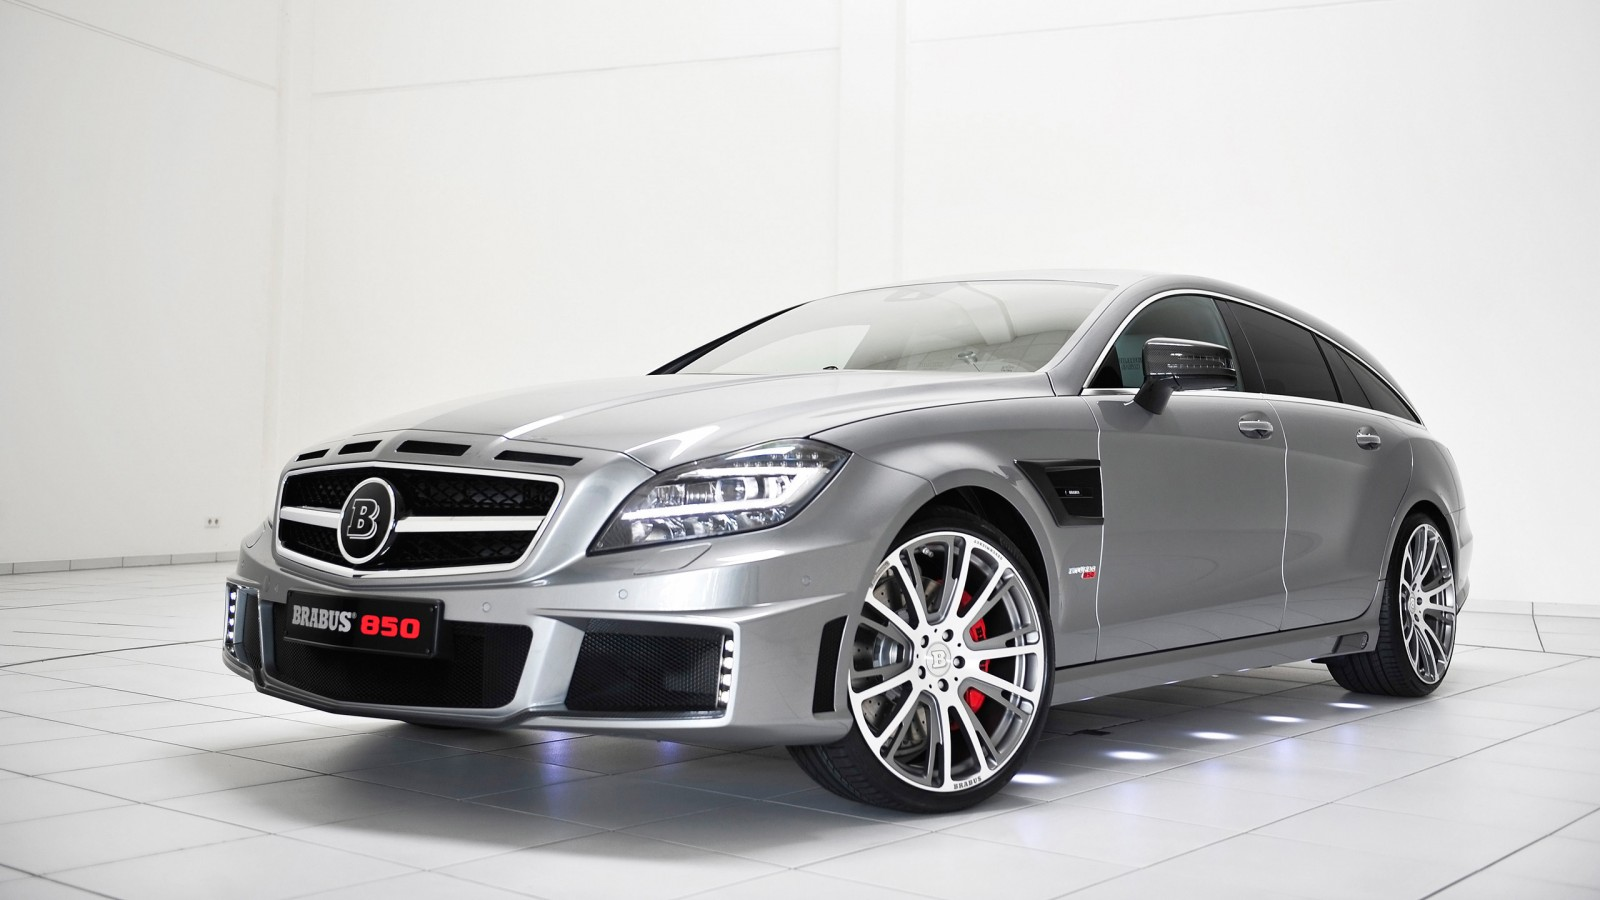 2013 brabus mercedes benz 850 shooting brake biturbo